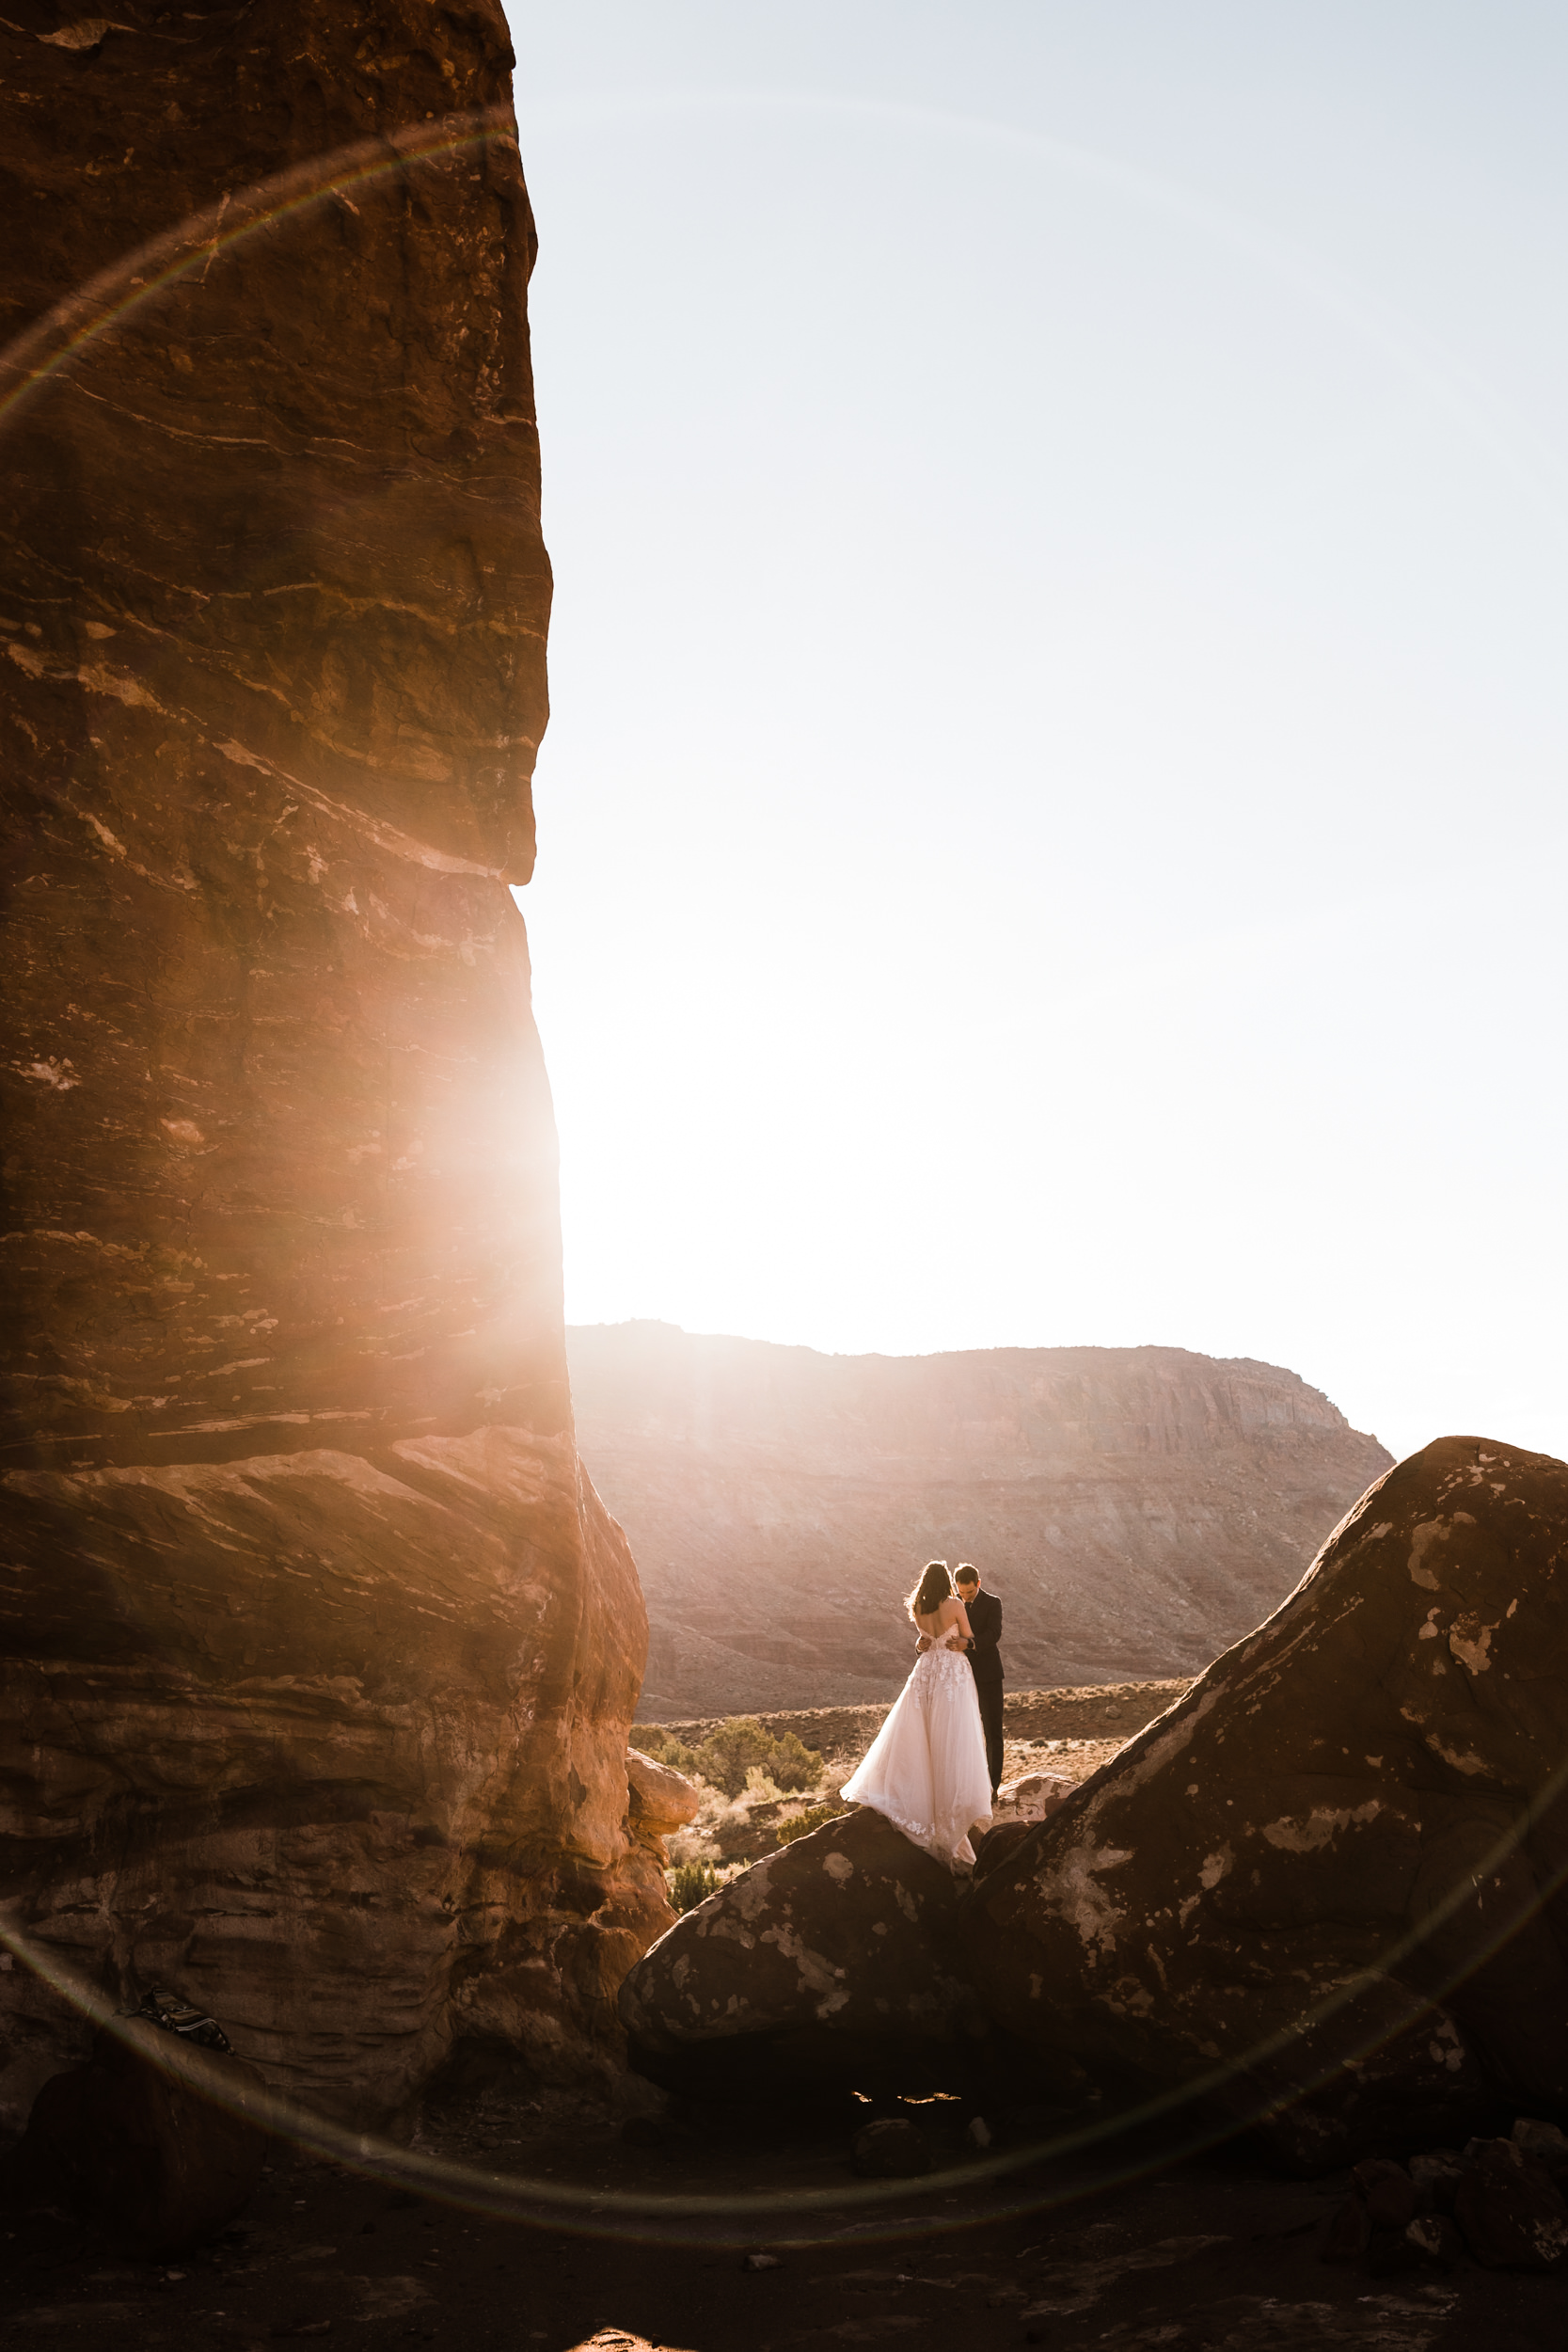 This is one of my favorite shots of their wedding in Moab.